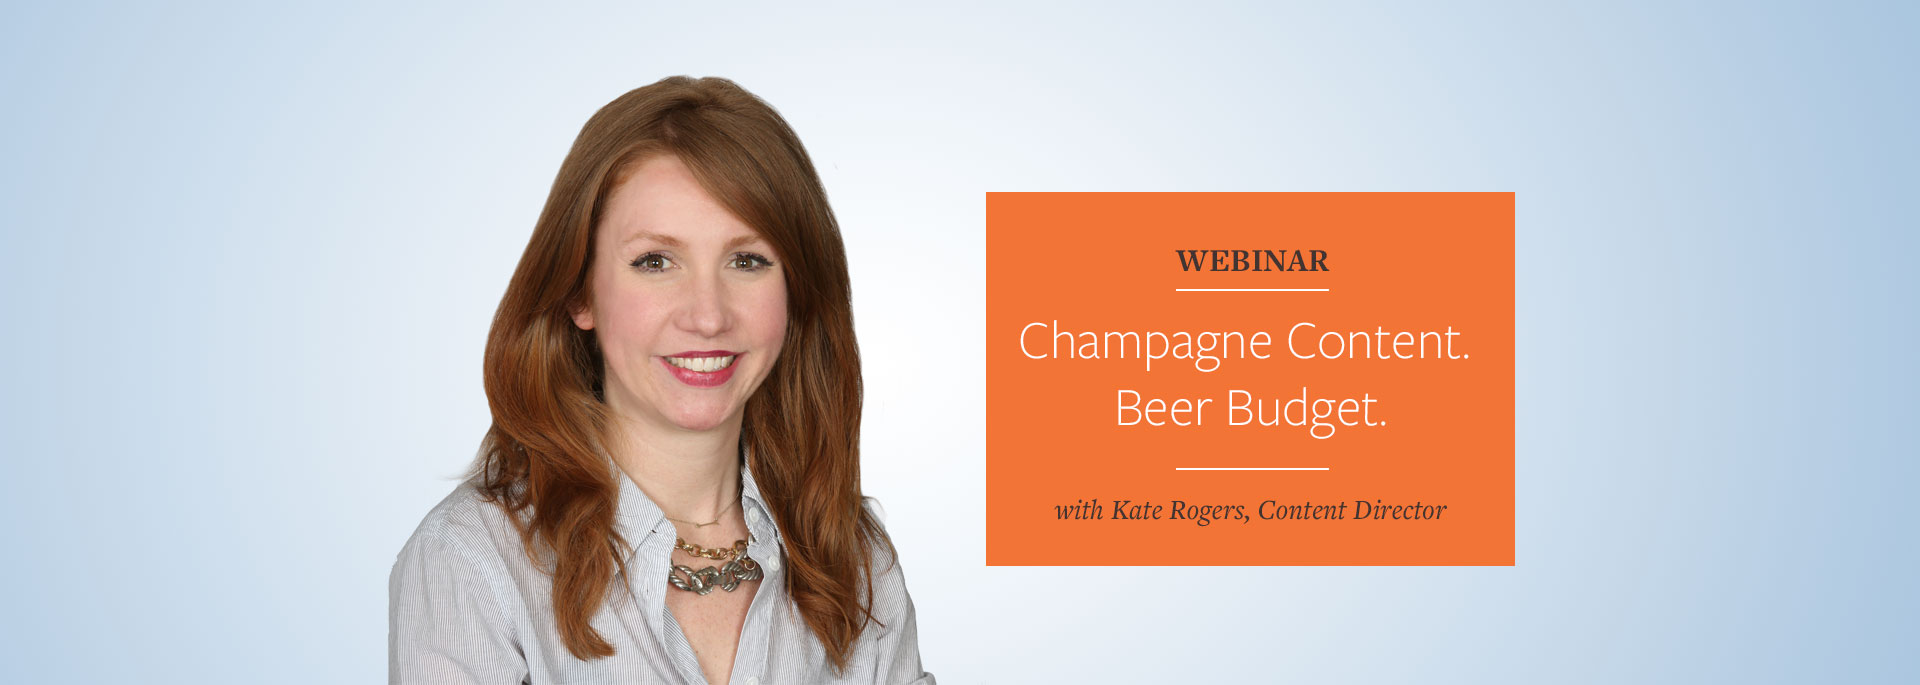 WEBINAR: Champagne Content. Beer Budget.